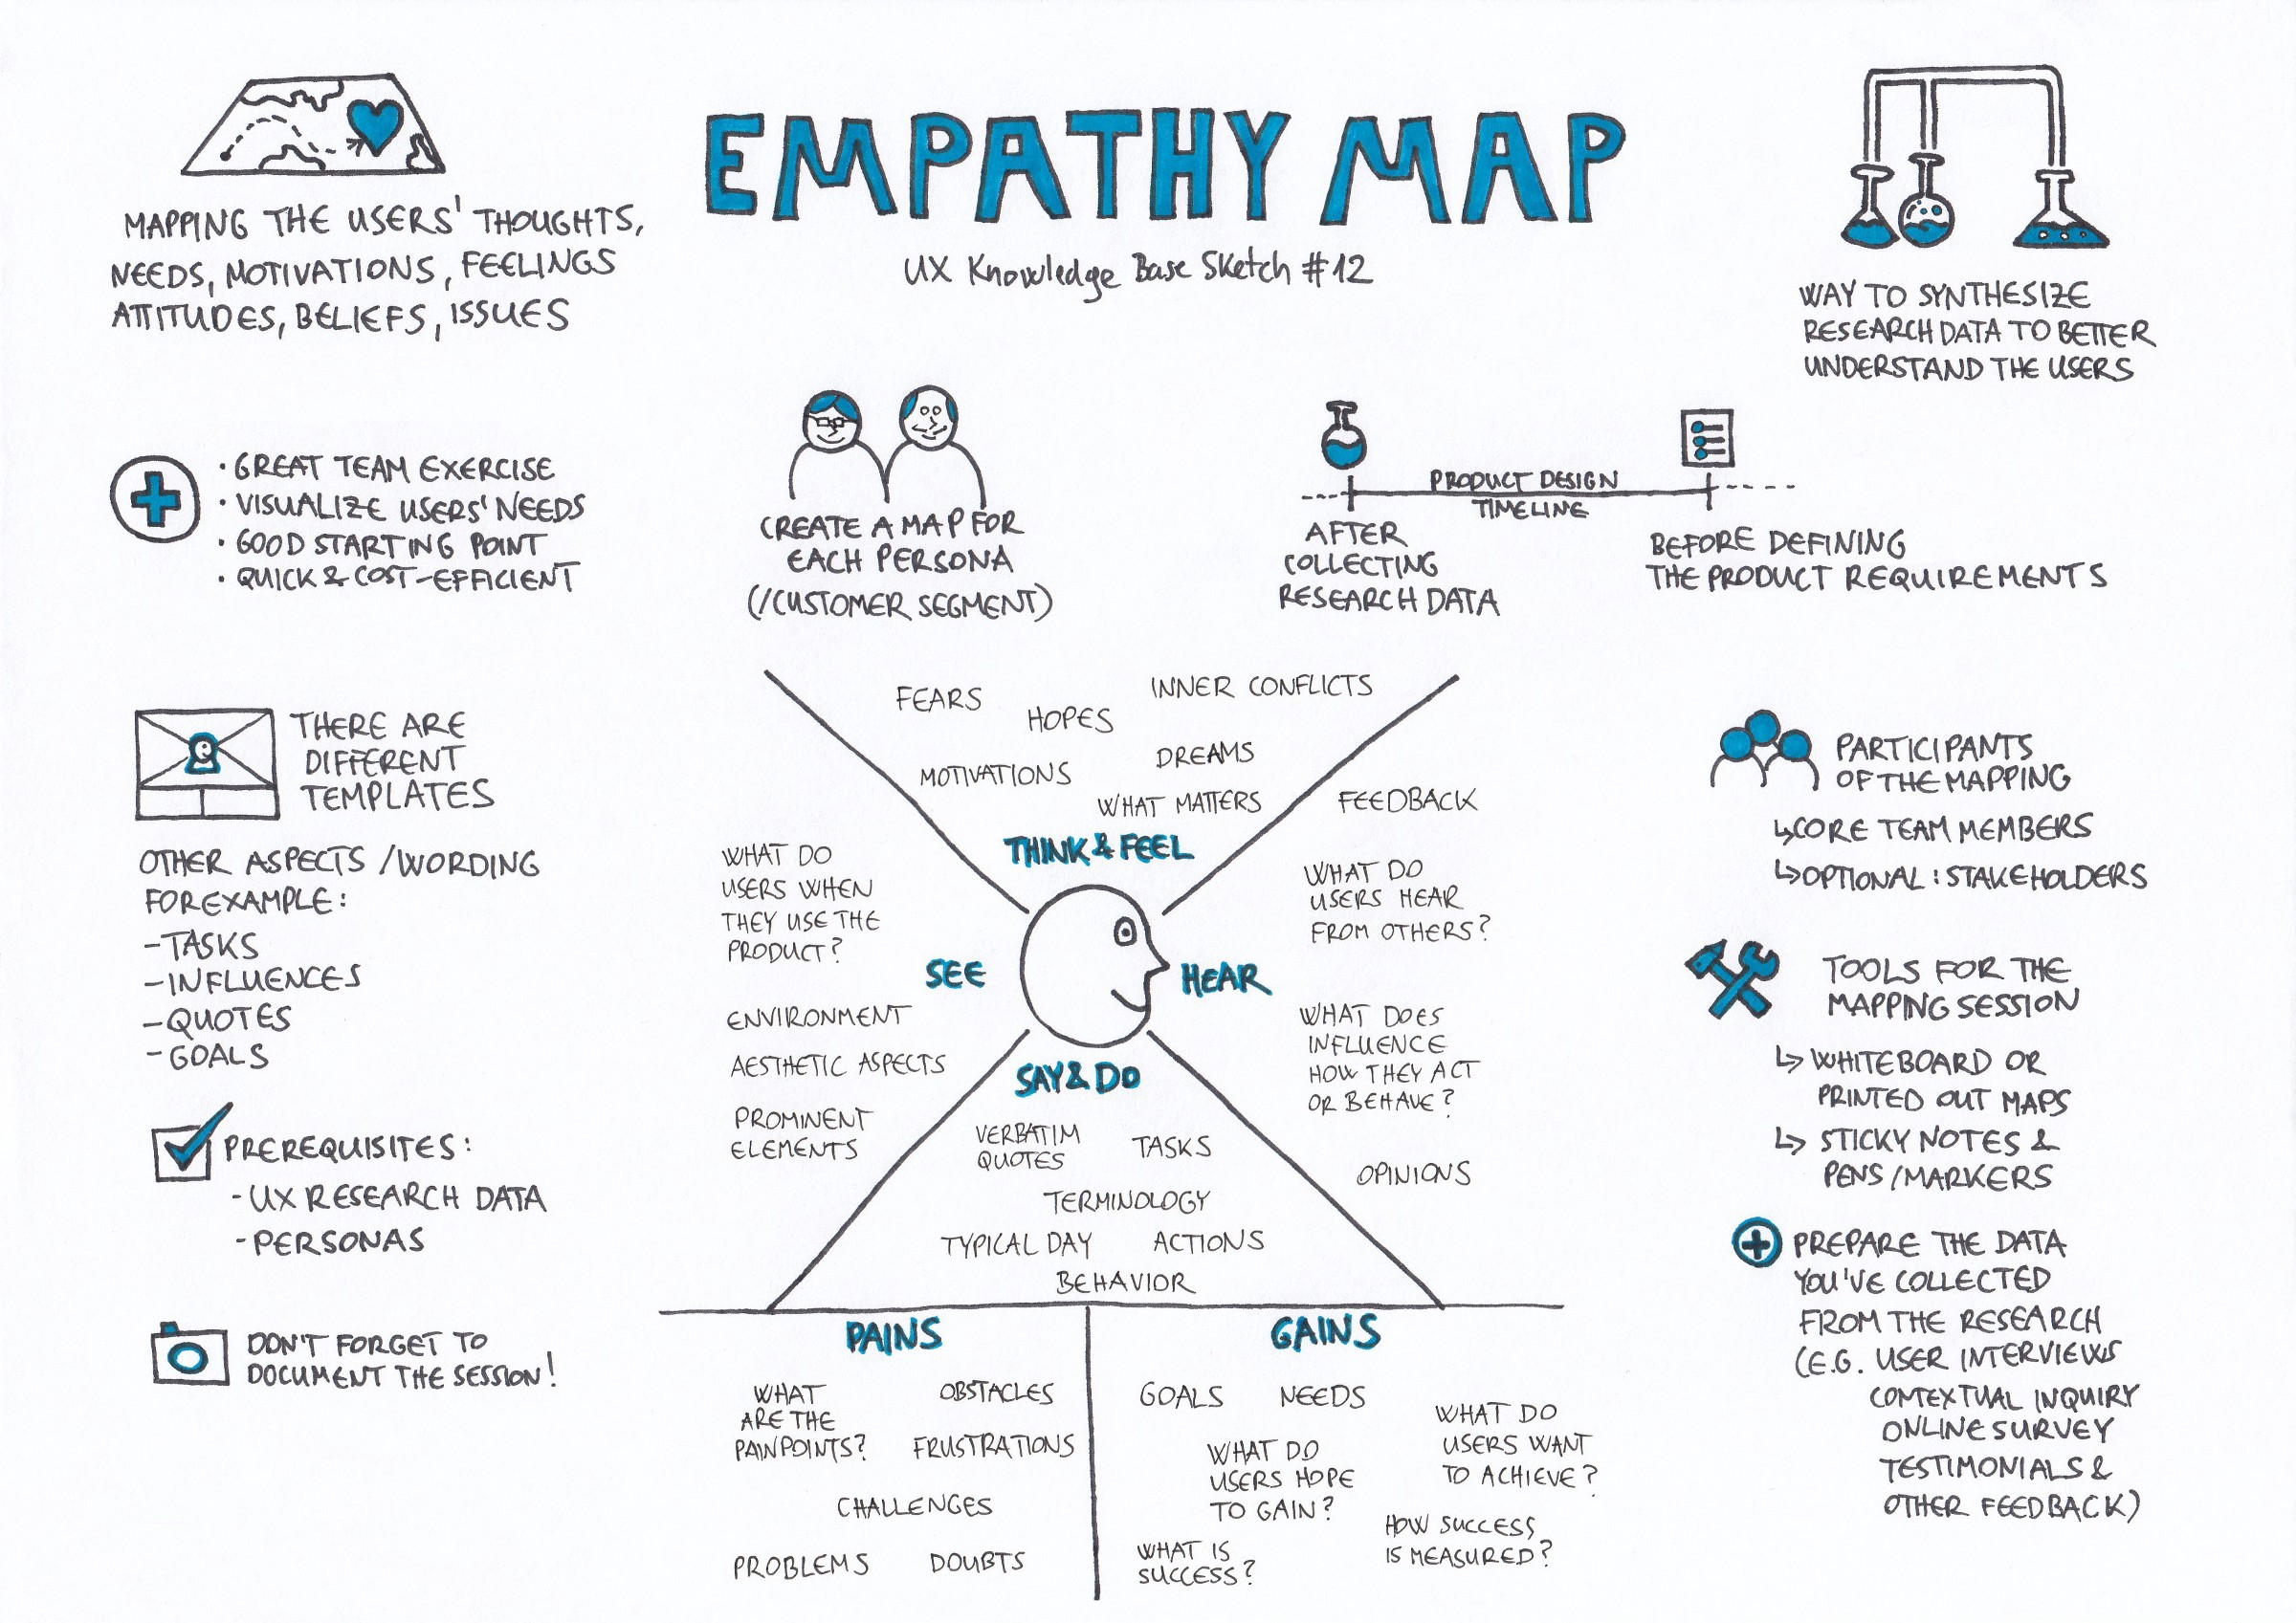 Empathy Map Ux Knowledge Base Sketch